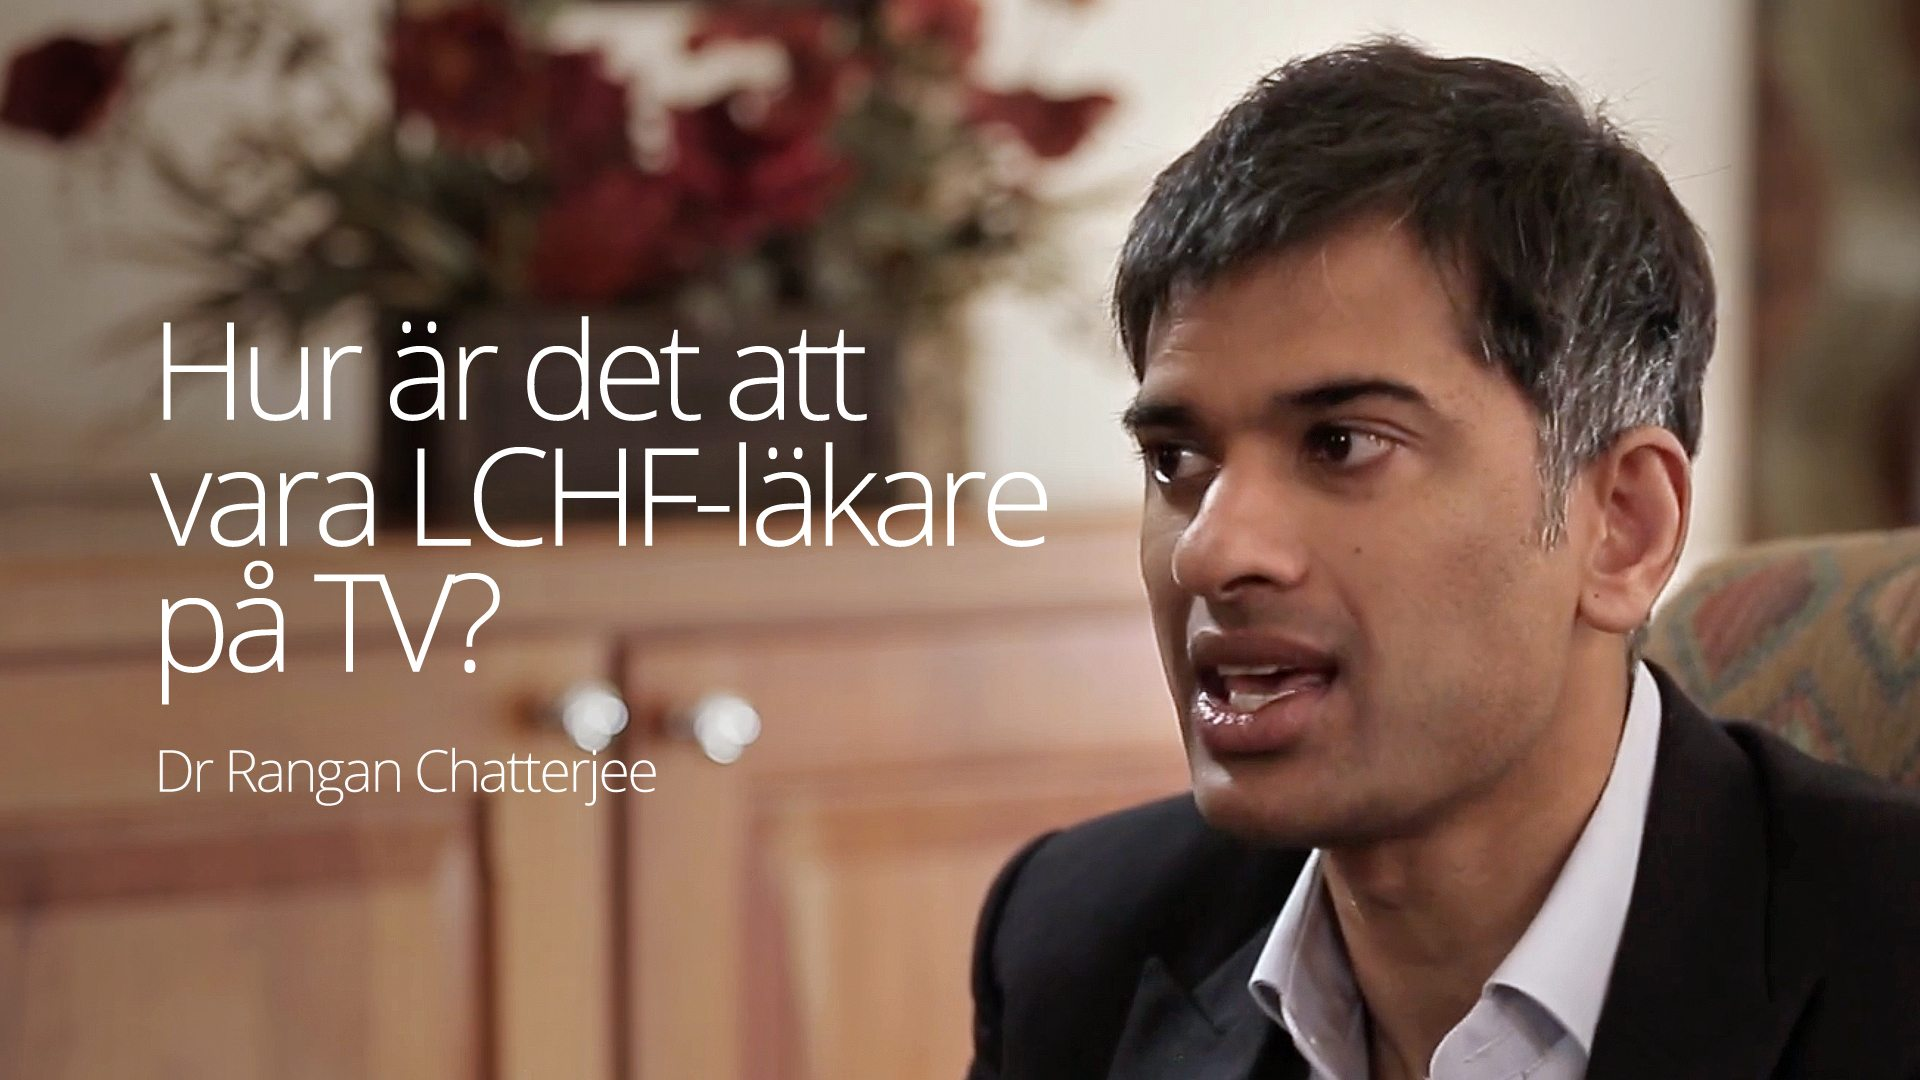 Dr. Rangan Chatterjee - What's It Like Being a Low-Carb Doctor on TV? (Vail 2016)